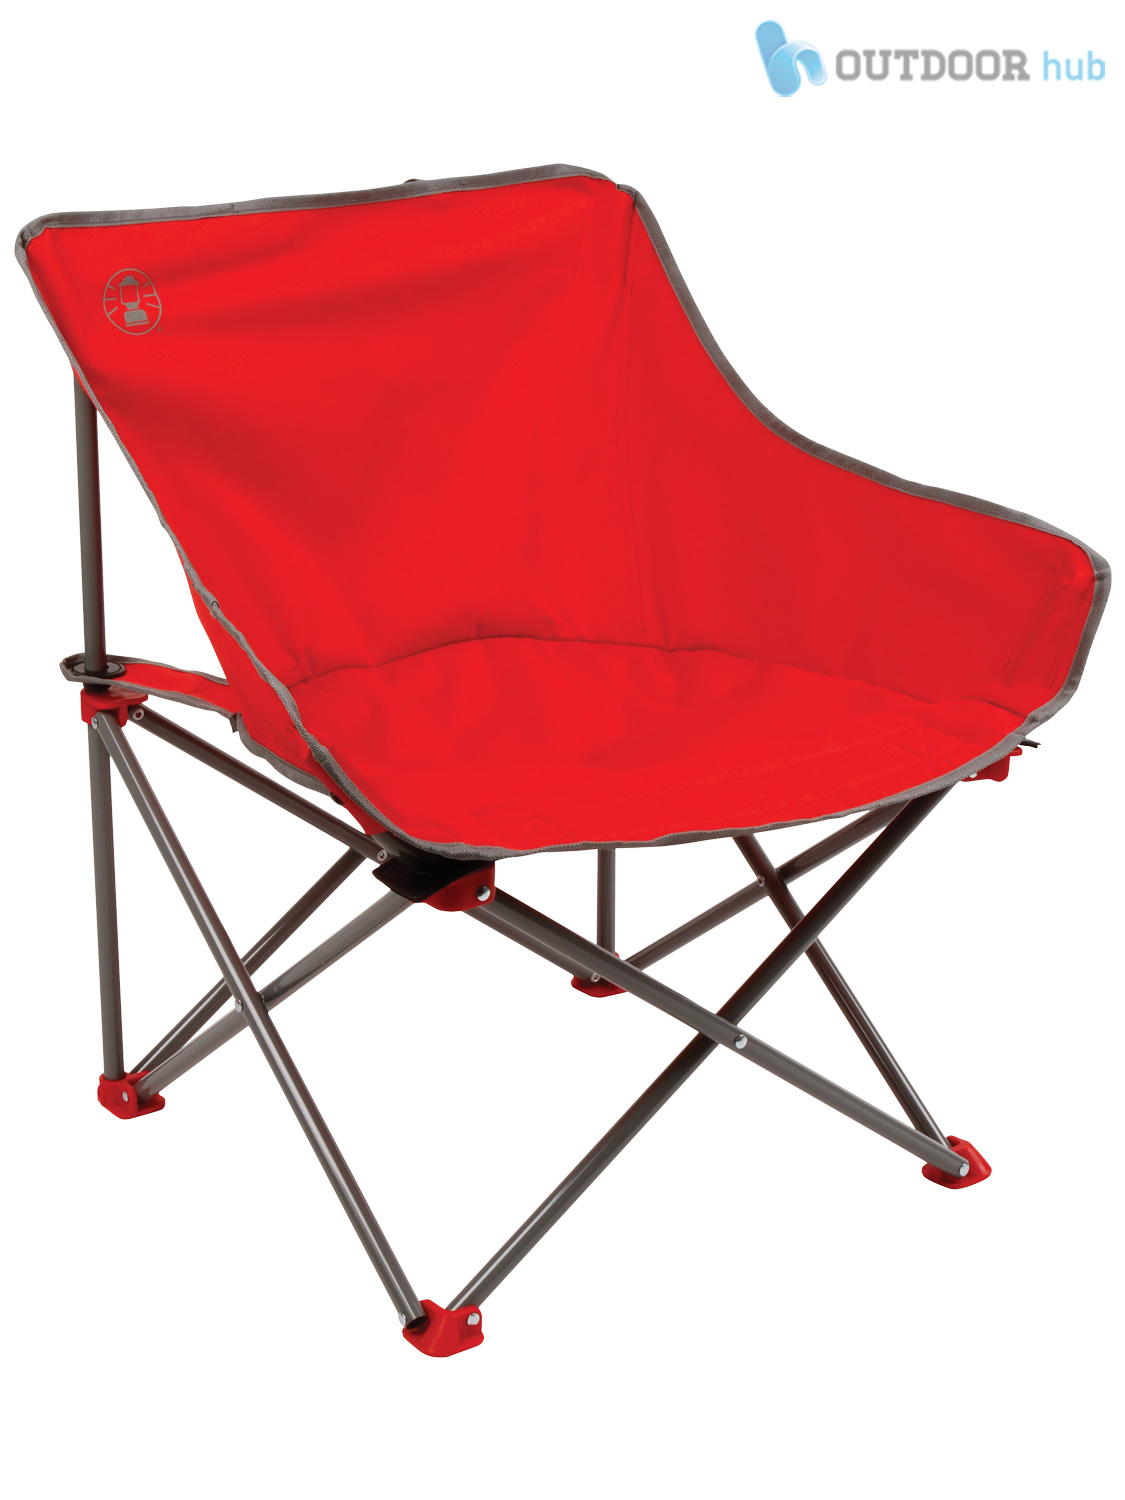 Coleman Bucket Folding Chair LowProfile Lightweight Camping Fishing Hiking Beach